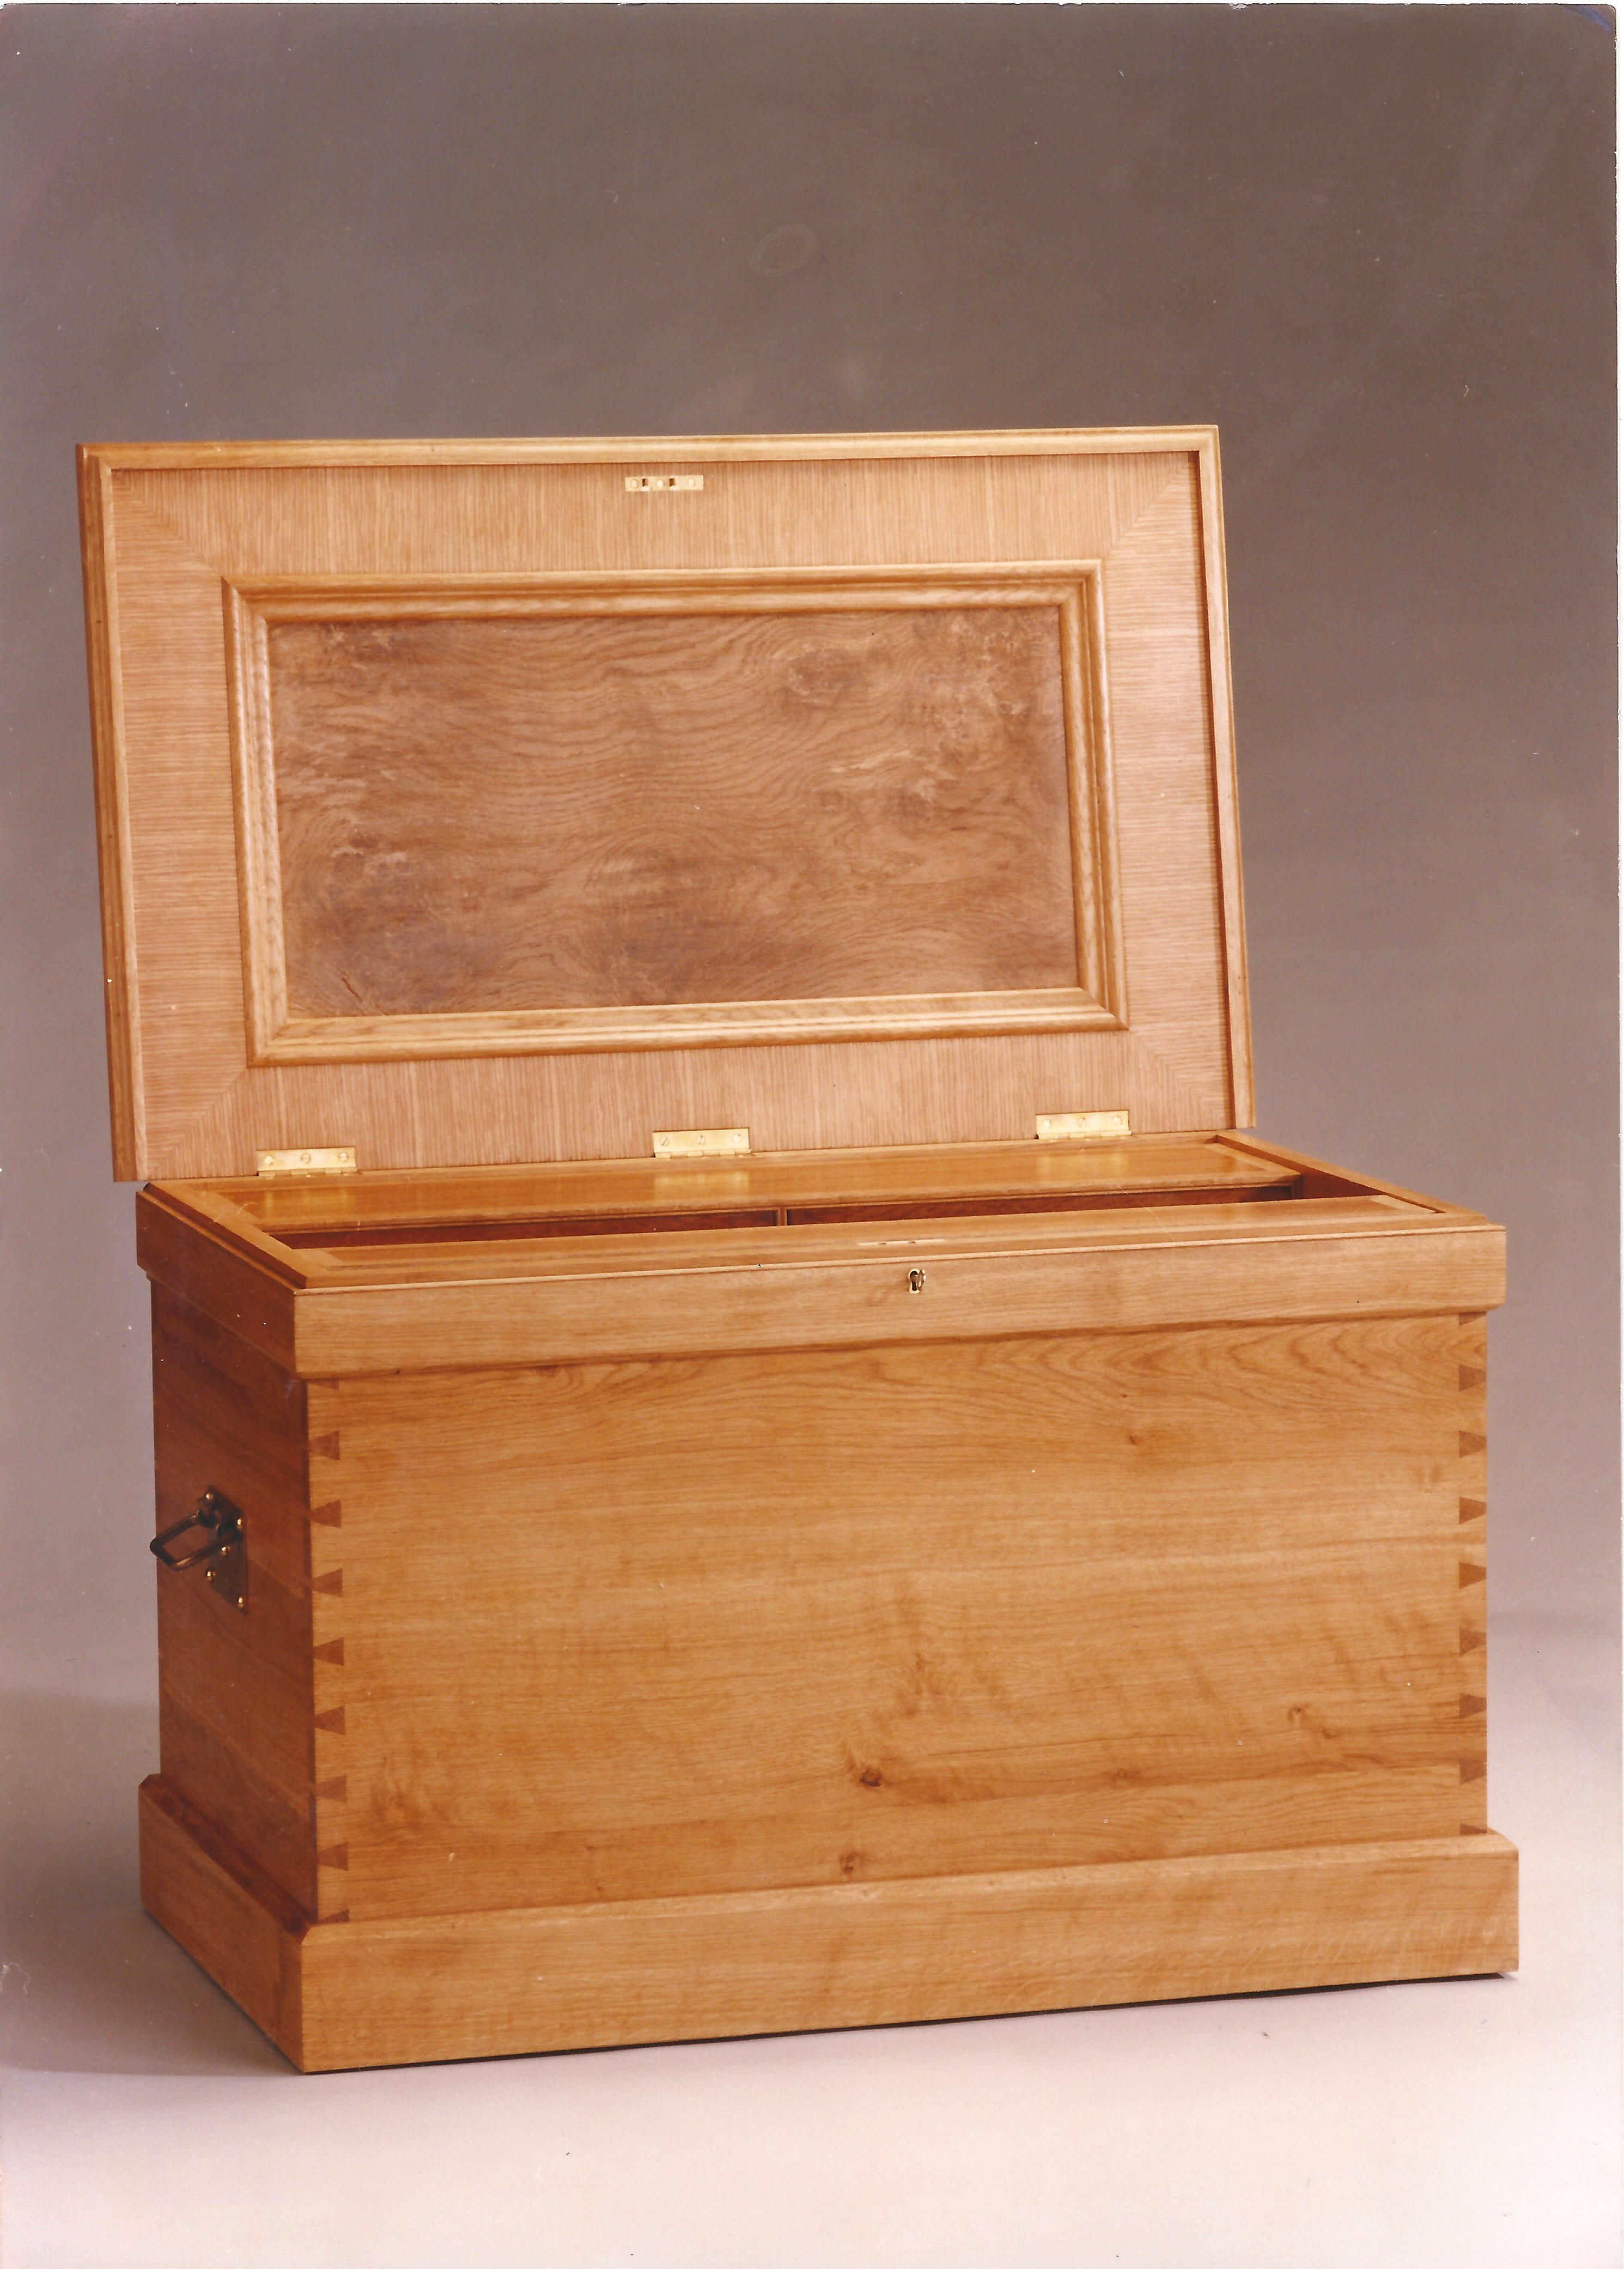 My tool box. This is a replica Cabinetmakers tool chest (C